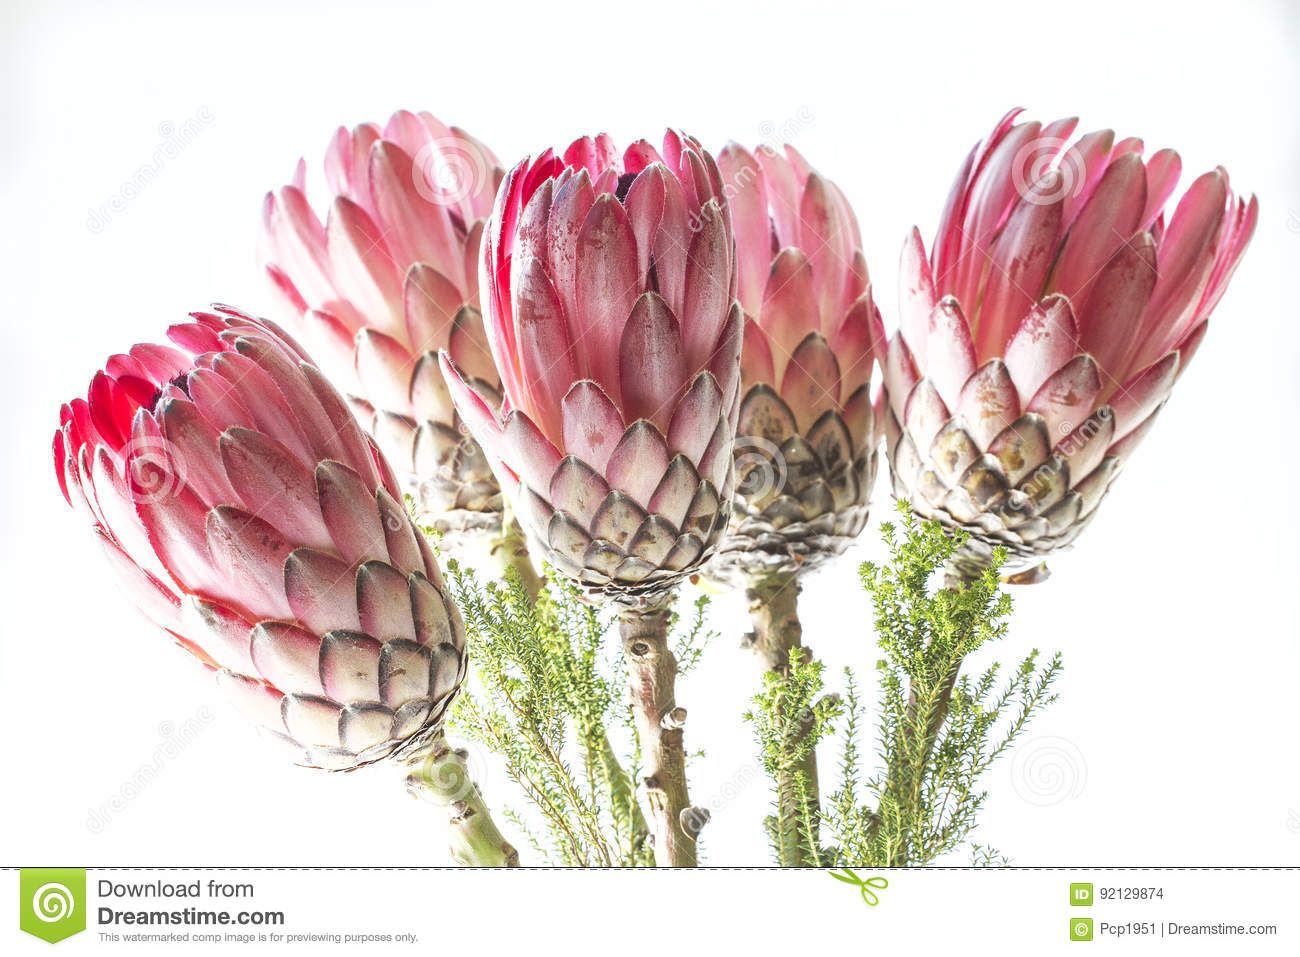 Photo About Bunch Of Protea Flowers Against White Background Image Of Bush Protea Bunch 92129874 In 2020 Flowers White Background Protea